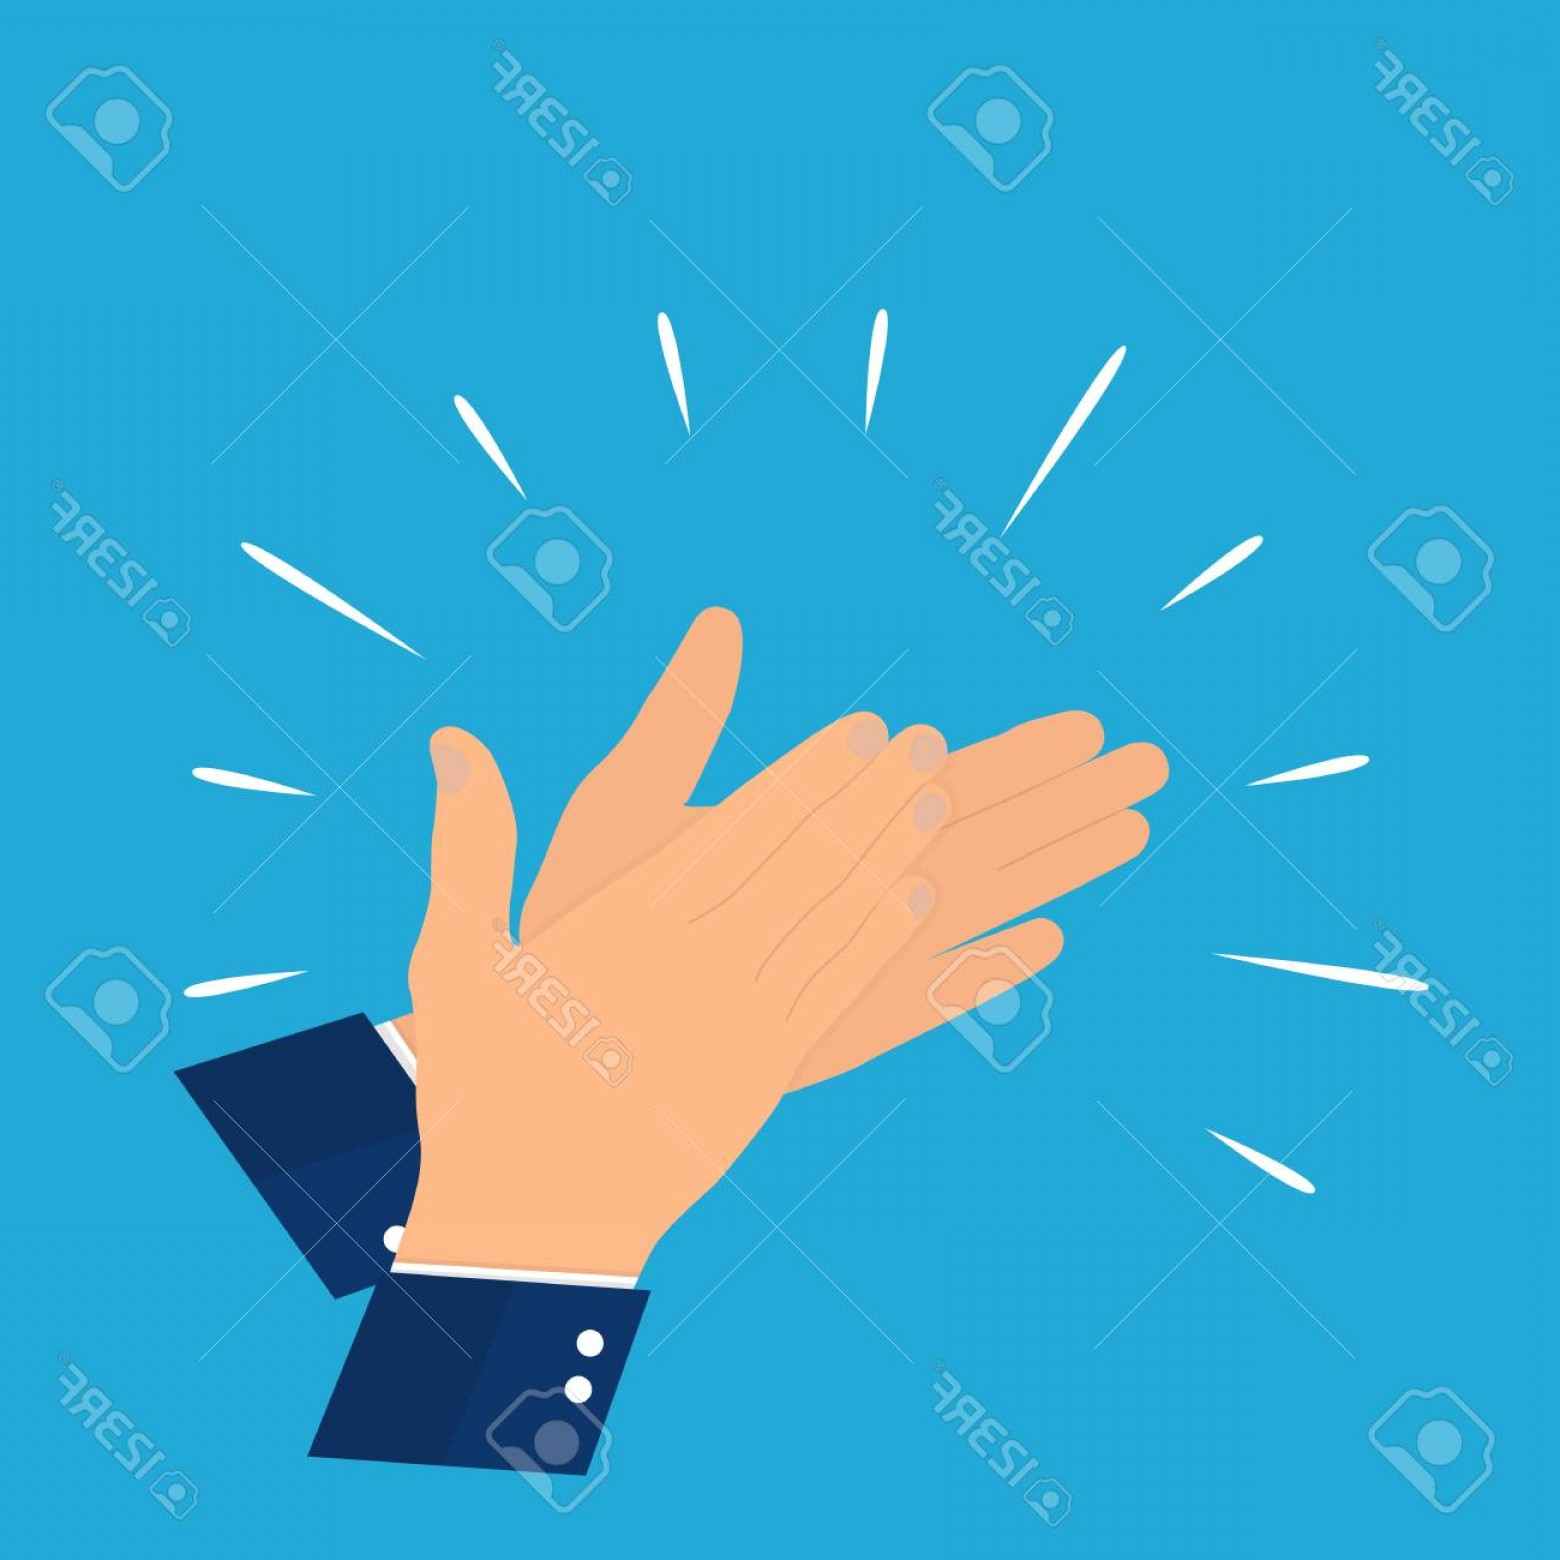 1560x1560 Glamorous Photostock Vector Hands Clapping Vector Illustration